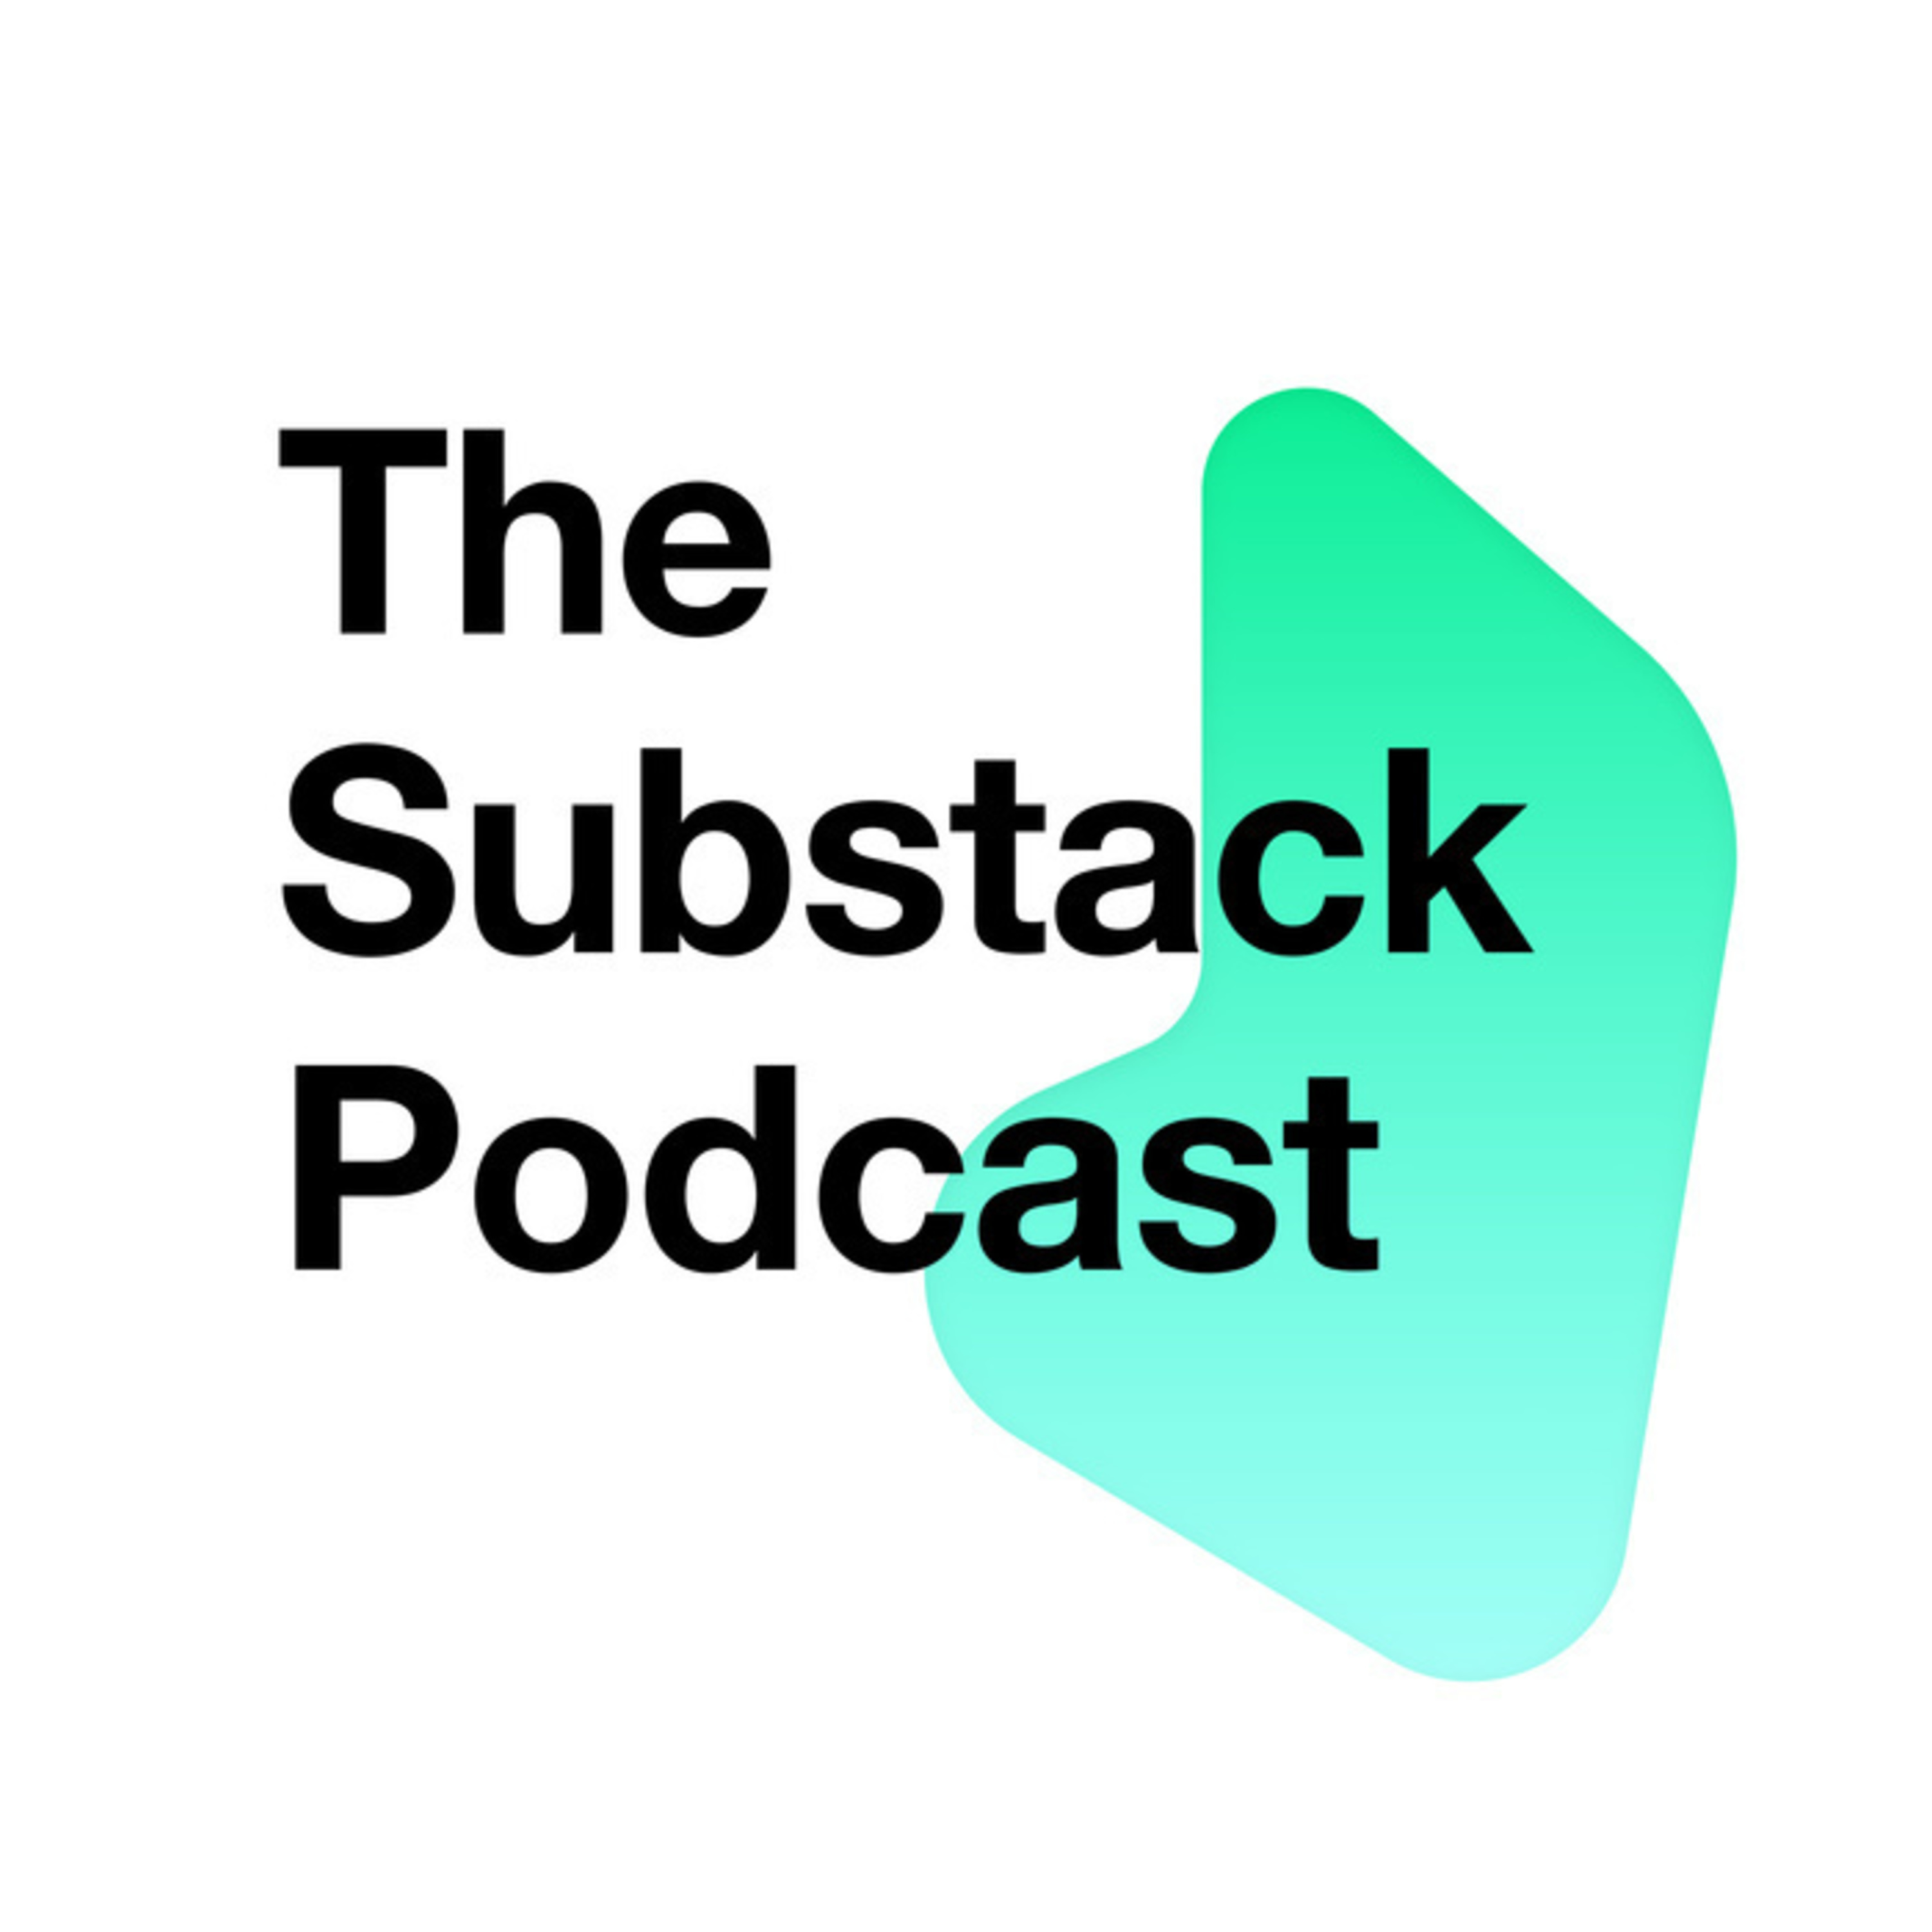 #003 - Nick Quah tells the story of Hot Pod, the podcast industry's biggest newsletter